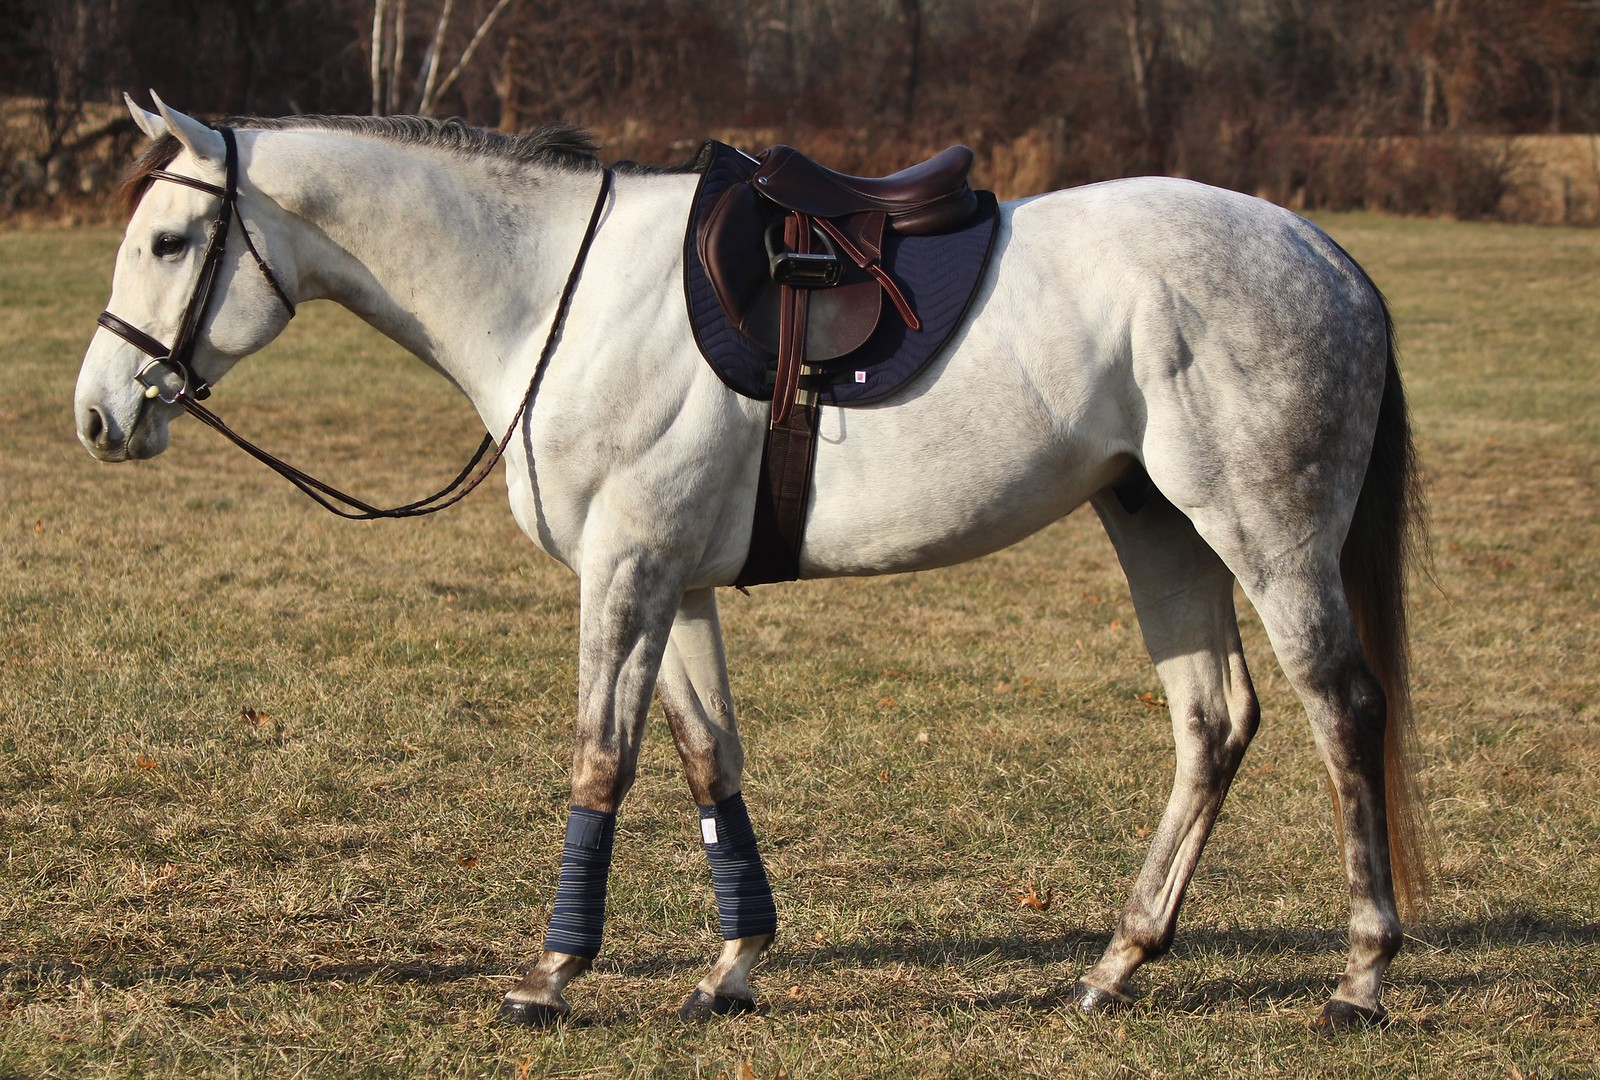 Navy All Purpose Pad on horse